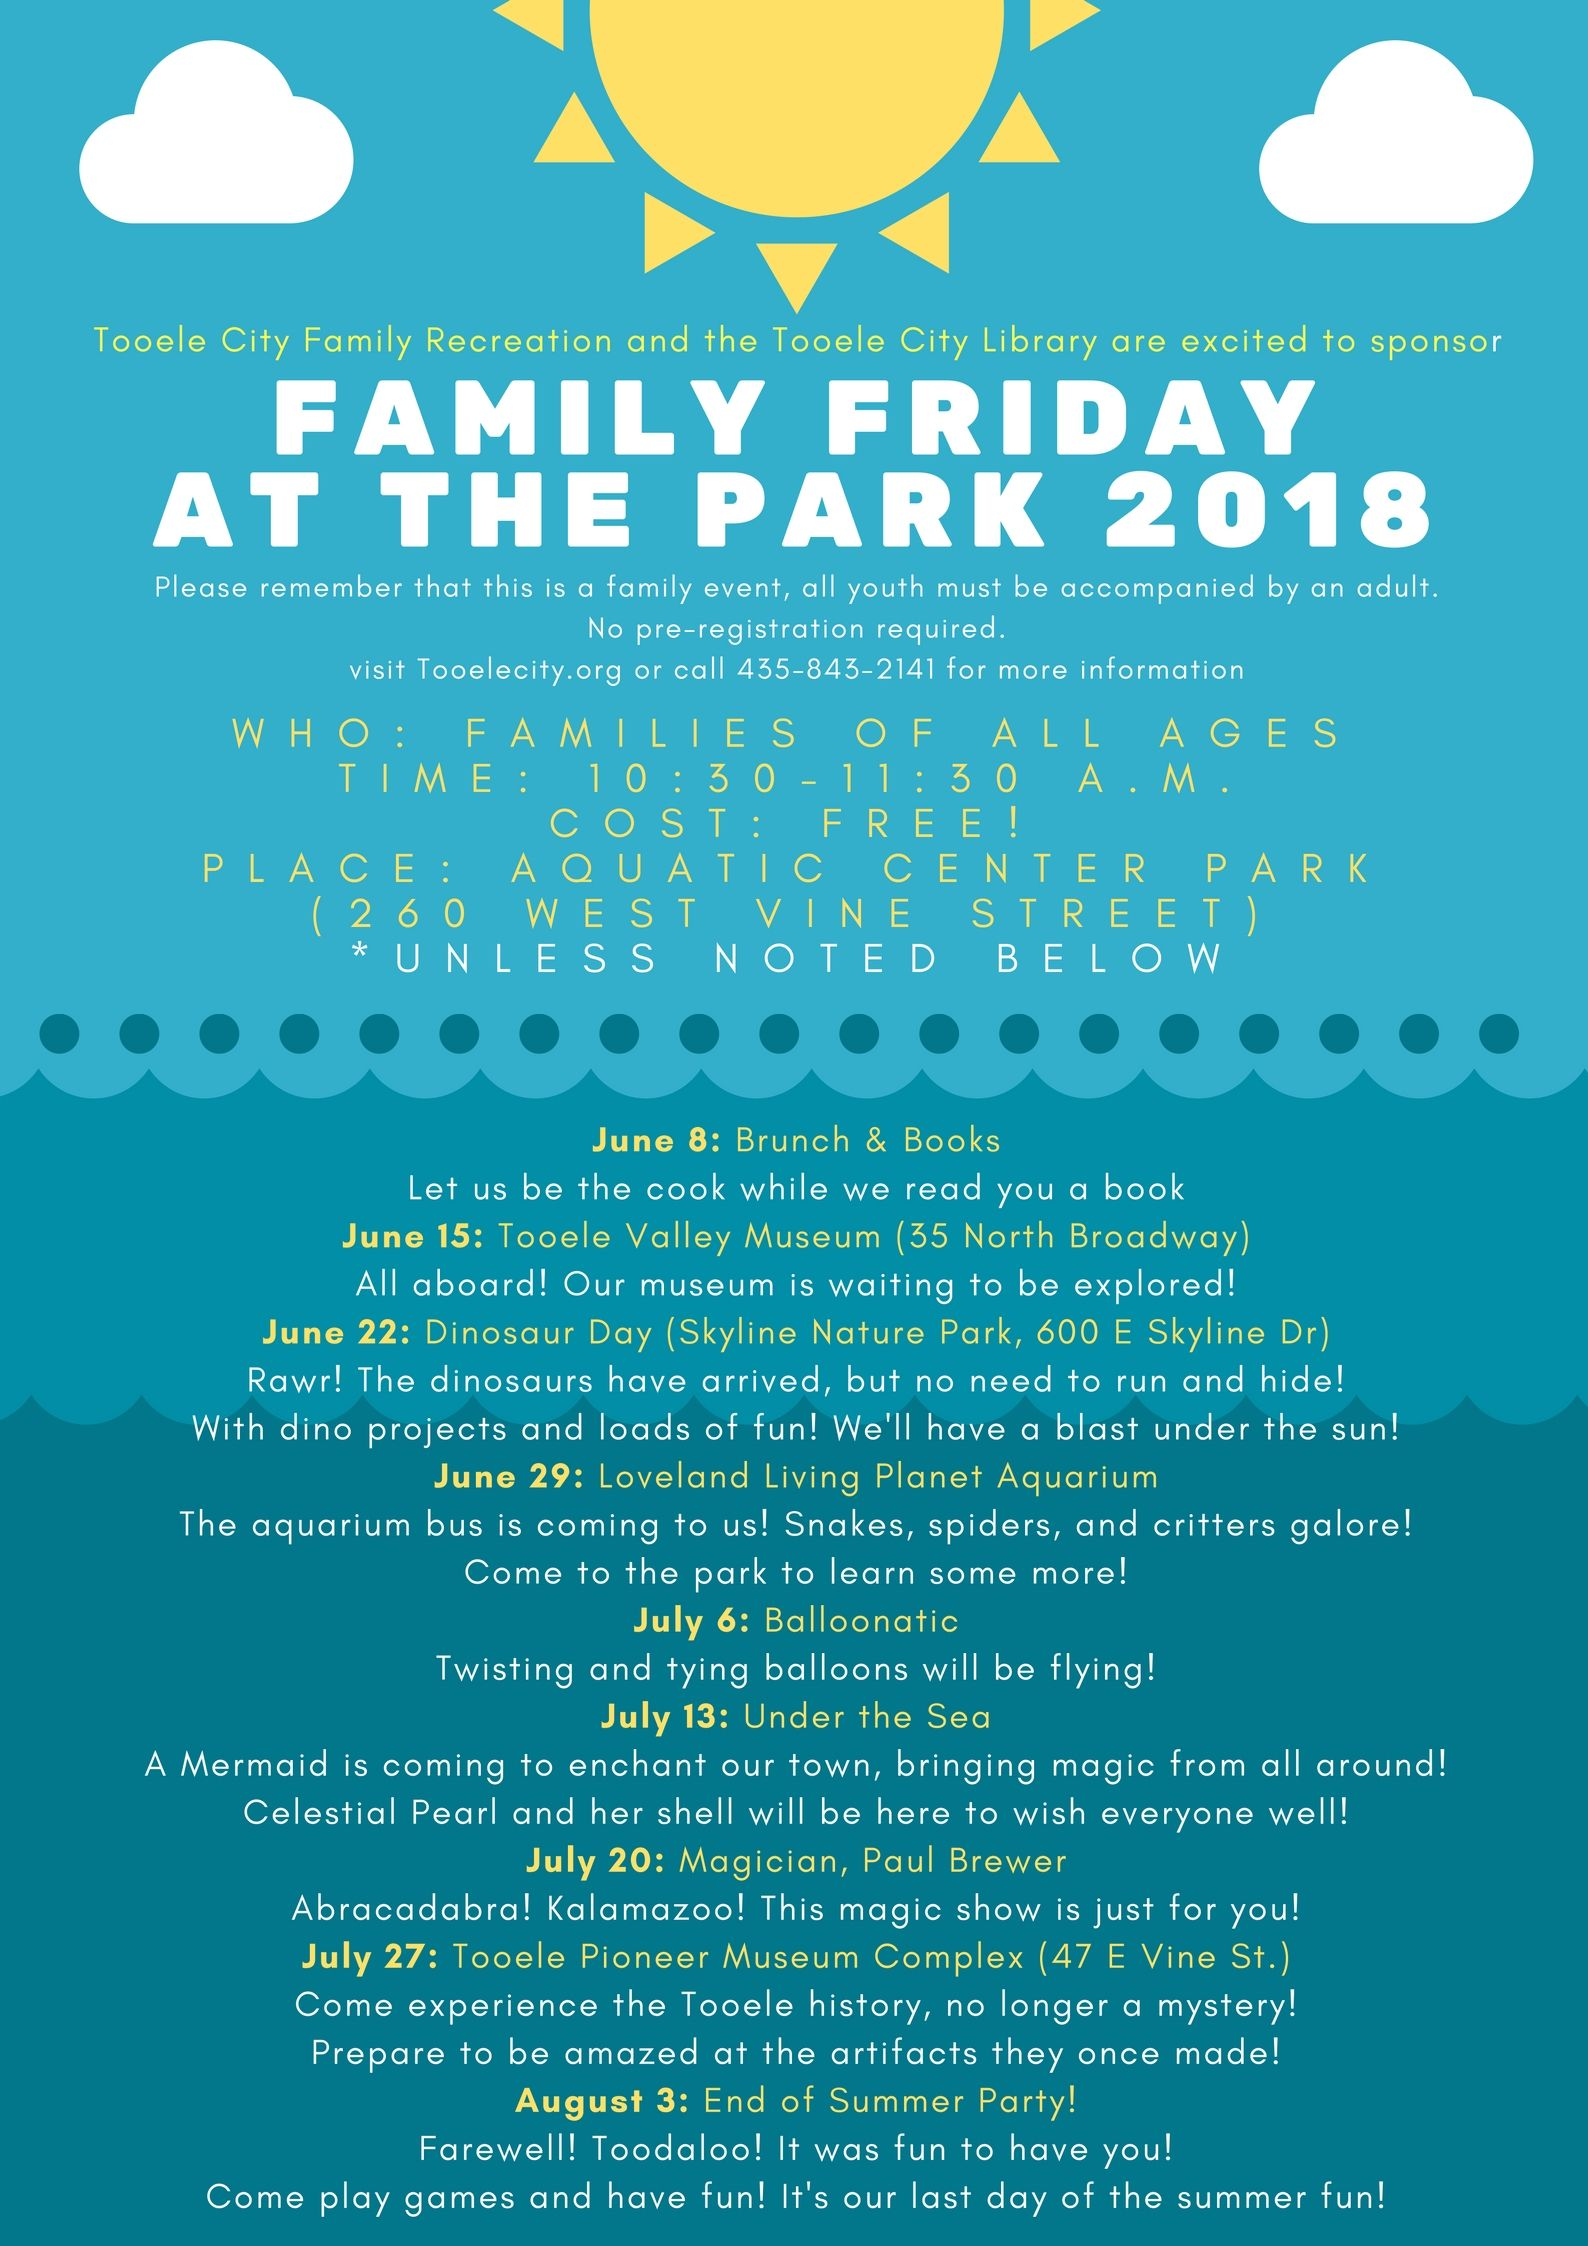 Friday at the Park: Brunch & Books @ Aquatic Center Park | Tooele ...